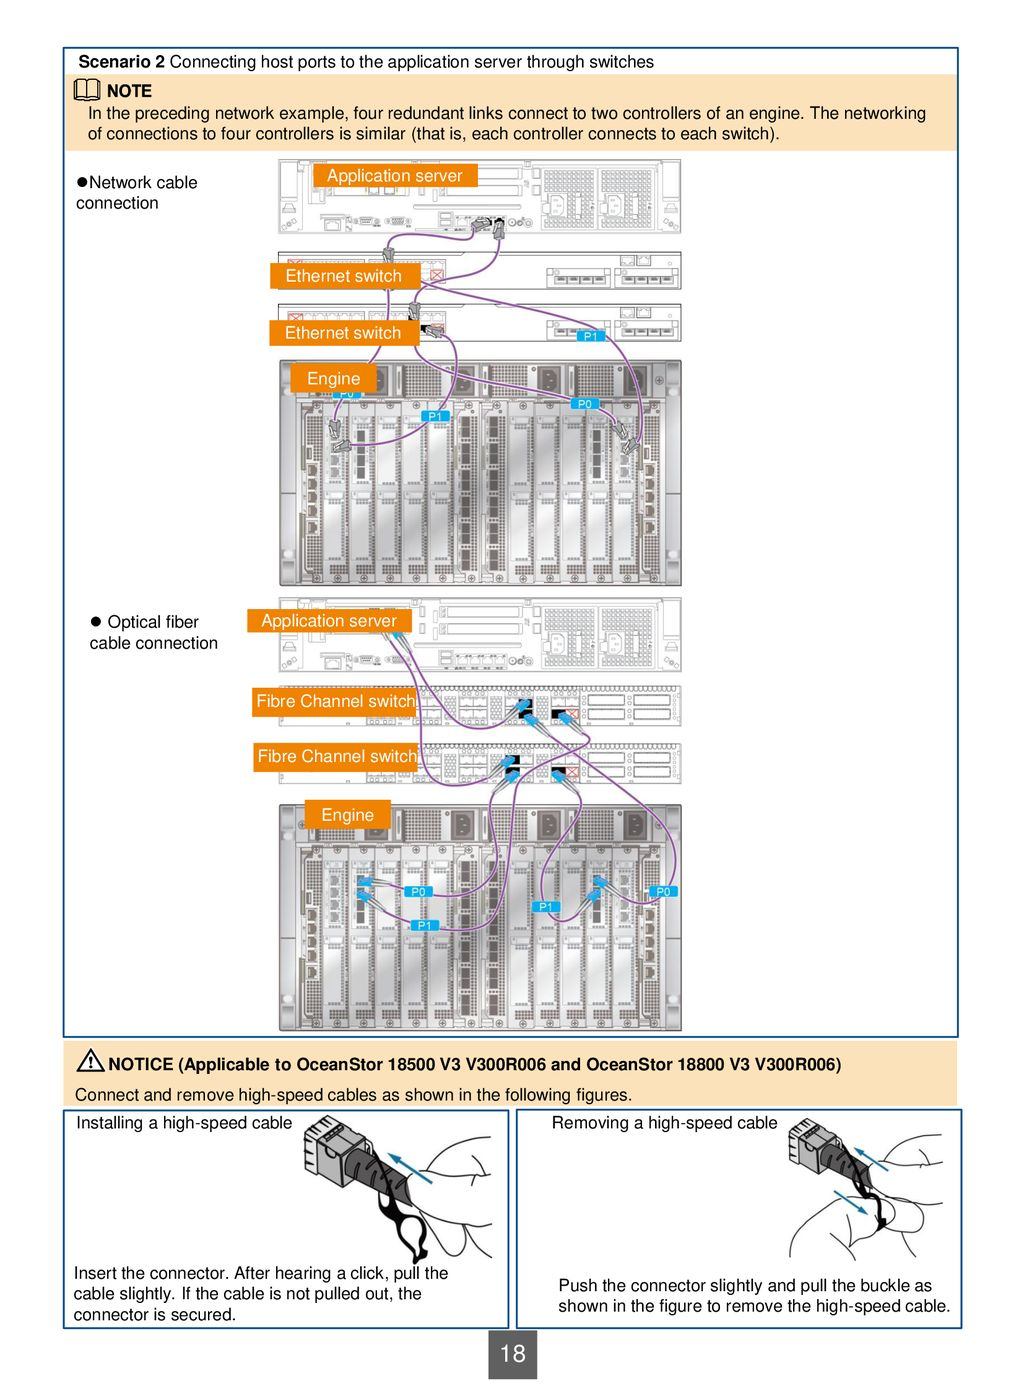 Quick Installation Guide Ppt Download Switch The Line Connectors Of Two Switches Are Connected In Scenario 2 Connecting Host Ports To Application Server Through